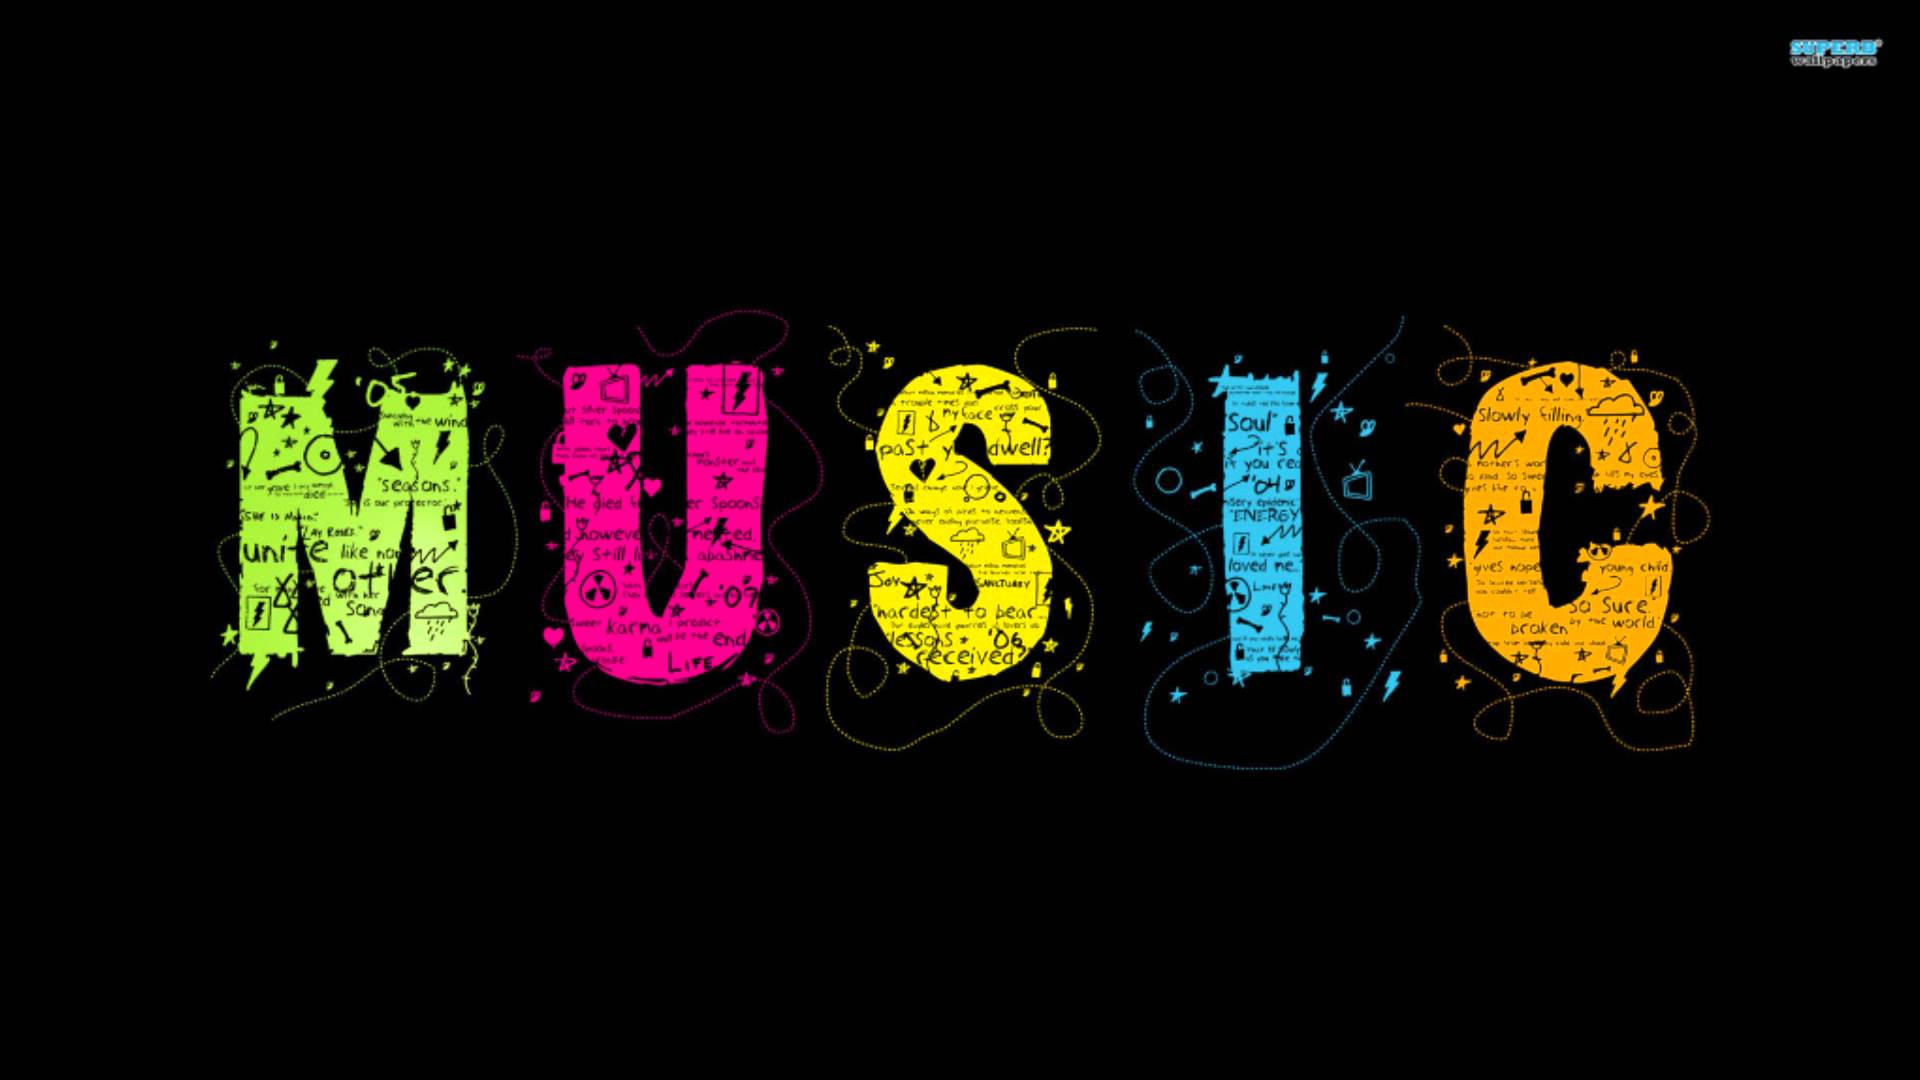 Music Backgrounds Music Desktop Background Free Premium: Free Music Wallpaper Backgrounds